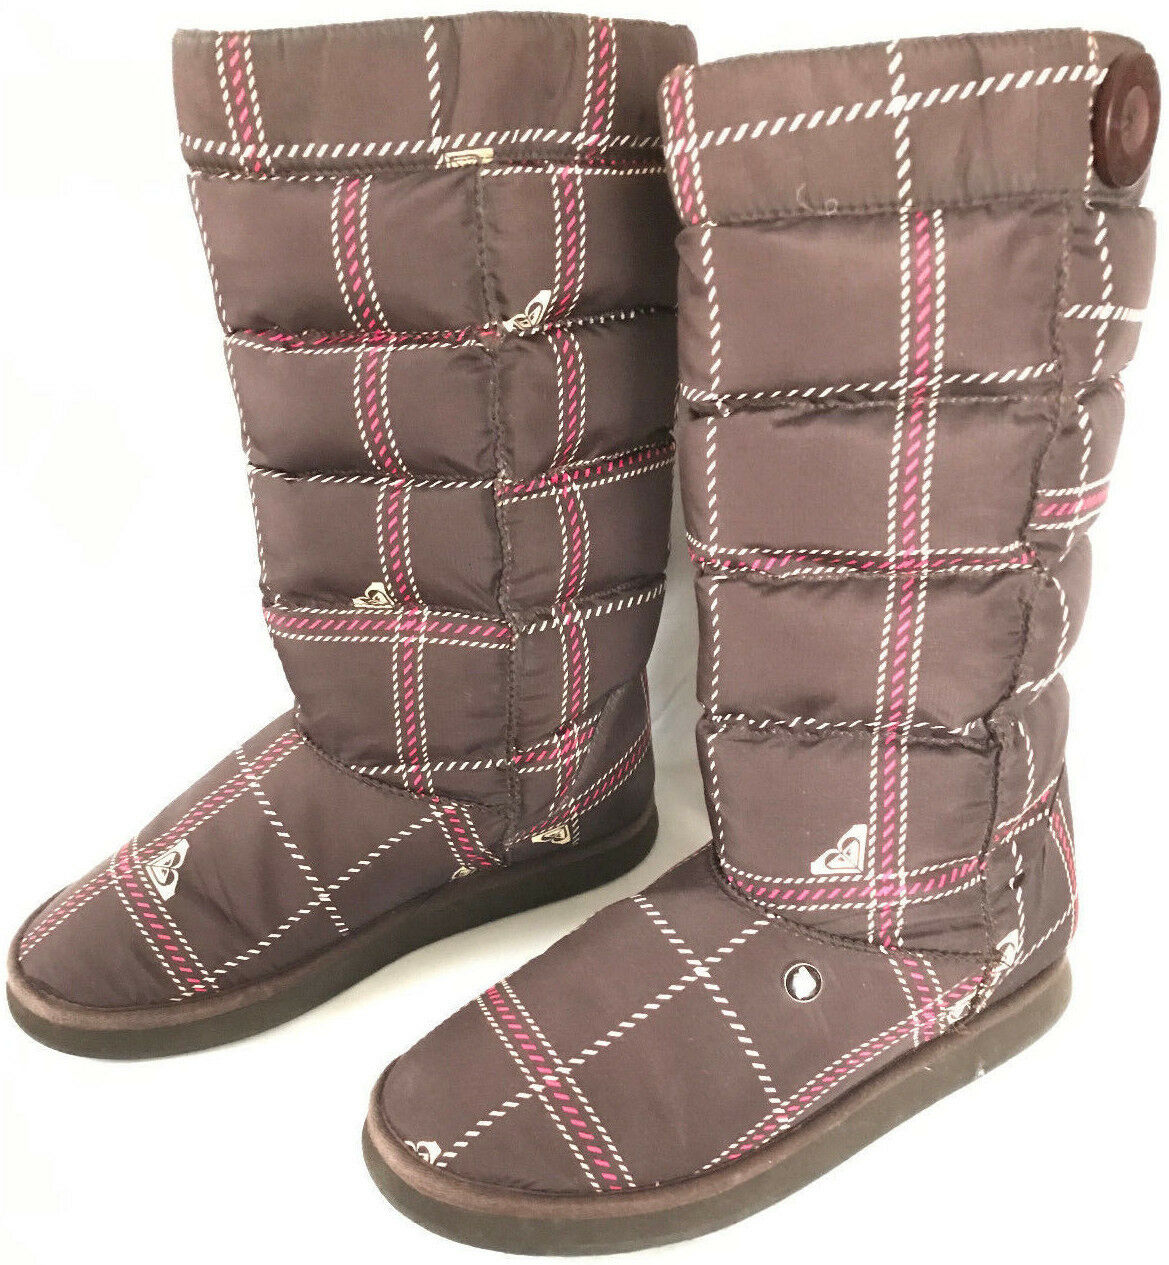 ROXY Shiver Winter Snow Boot Plaid Lined Pull-On Surf Comfort Boots Women's 8 M